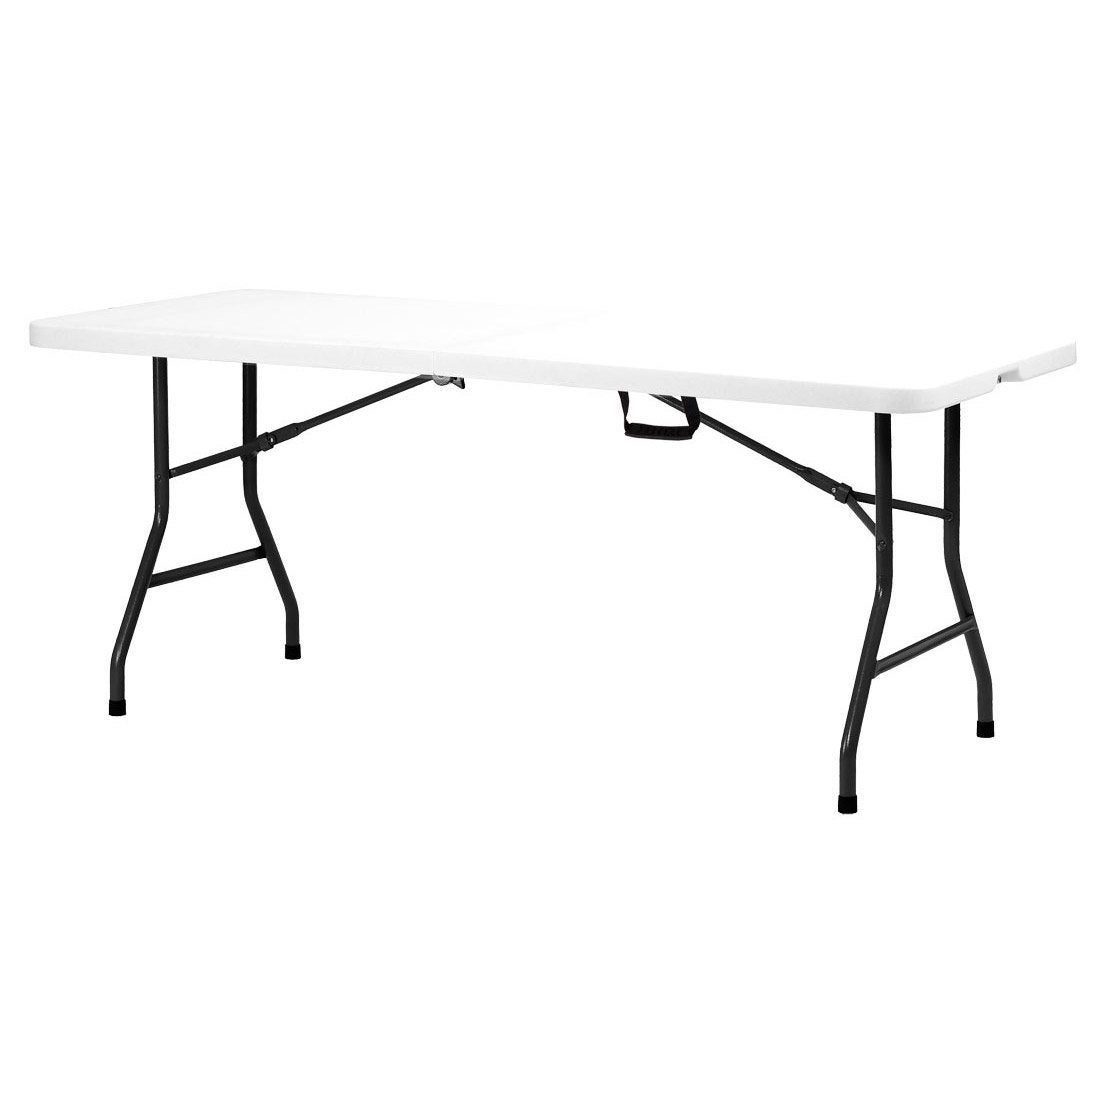 Table de jardin Fiesta rectangulaire blanc 6 personnes | Leroy Merlin